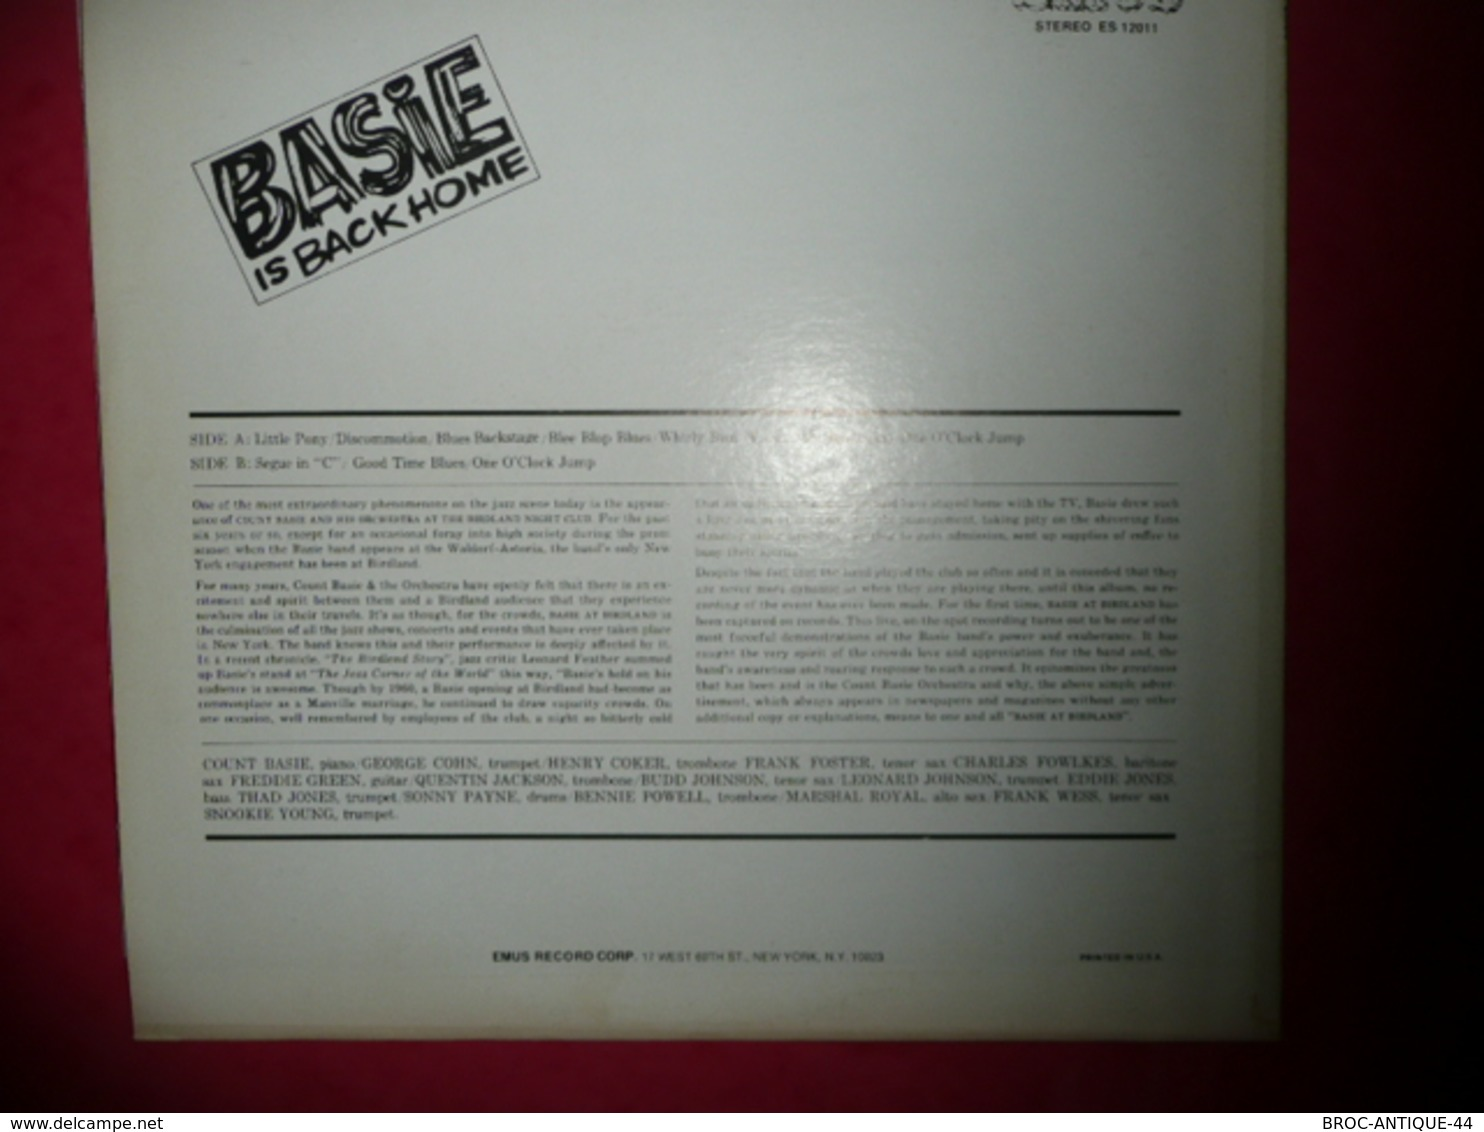 LP33 N°576 - BASIE AT BIRDLAND - RECORDED LIVE AT THE JAZZ CORNER OF THE WORLD - COMPILATION 9 TITRES - Jazz